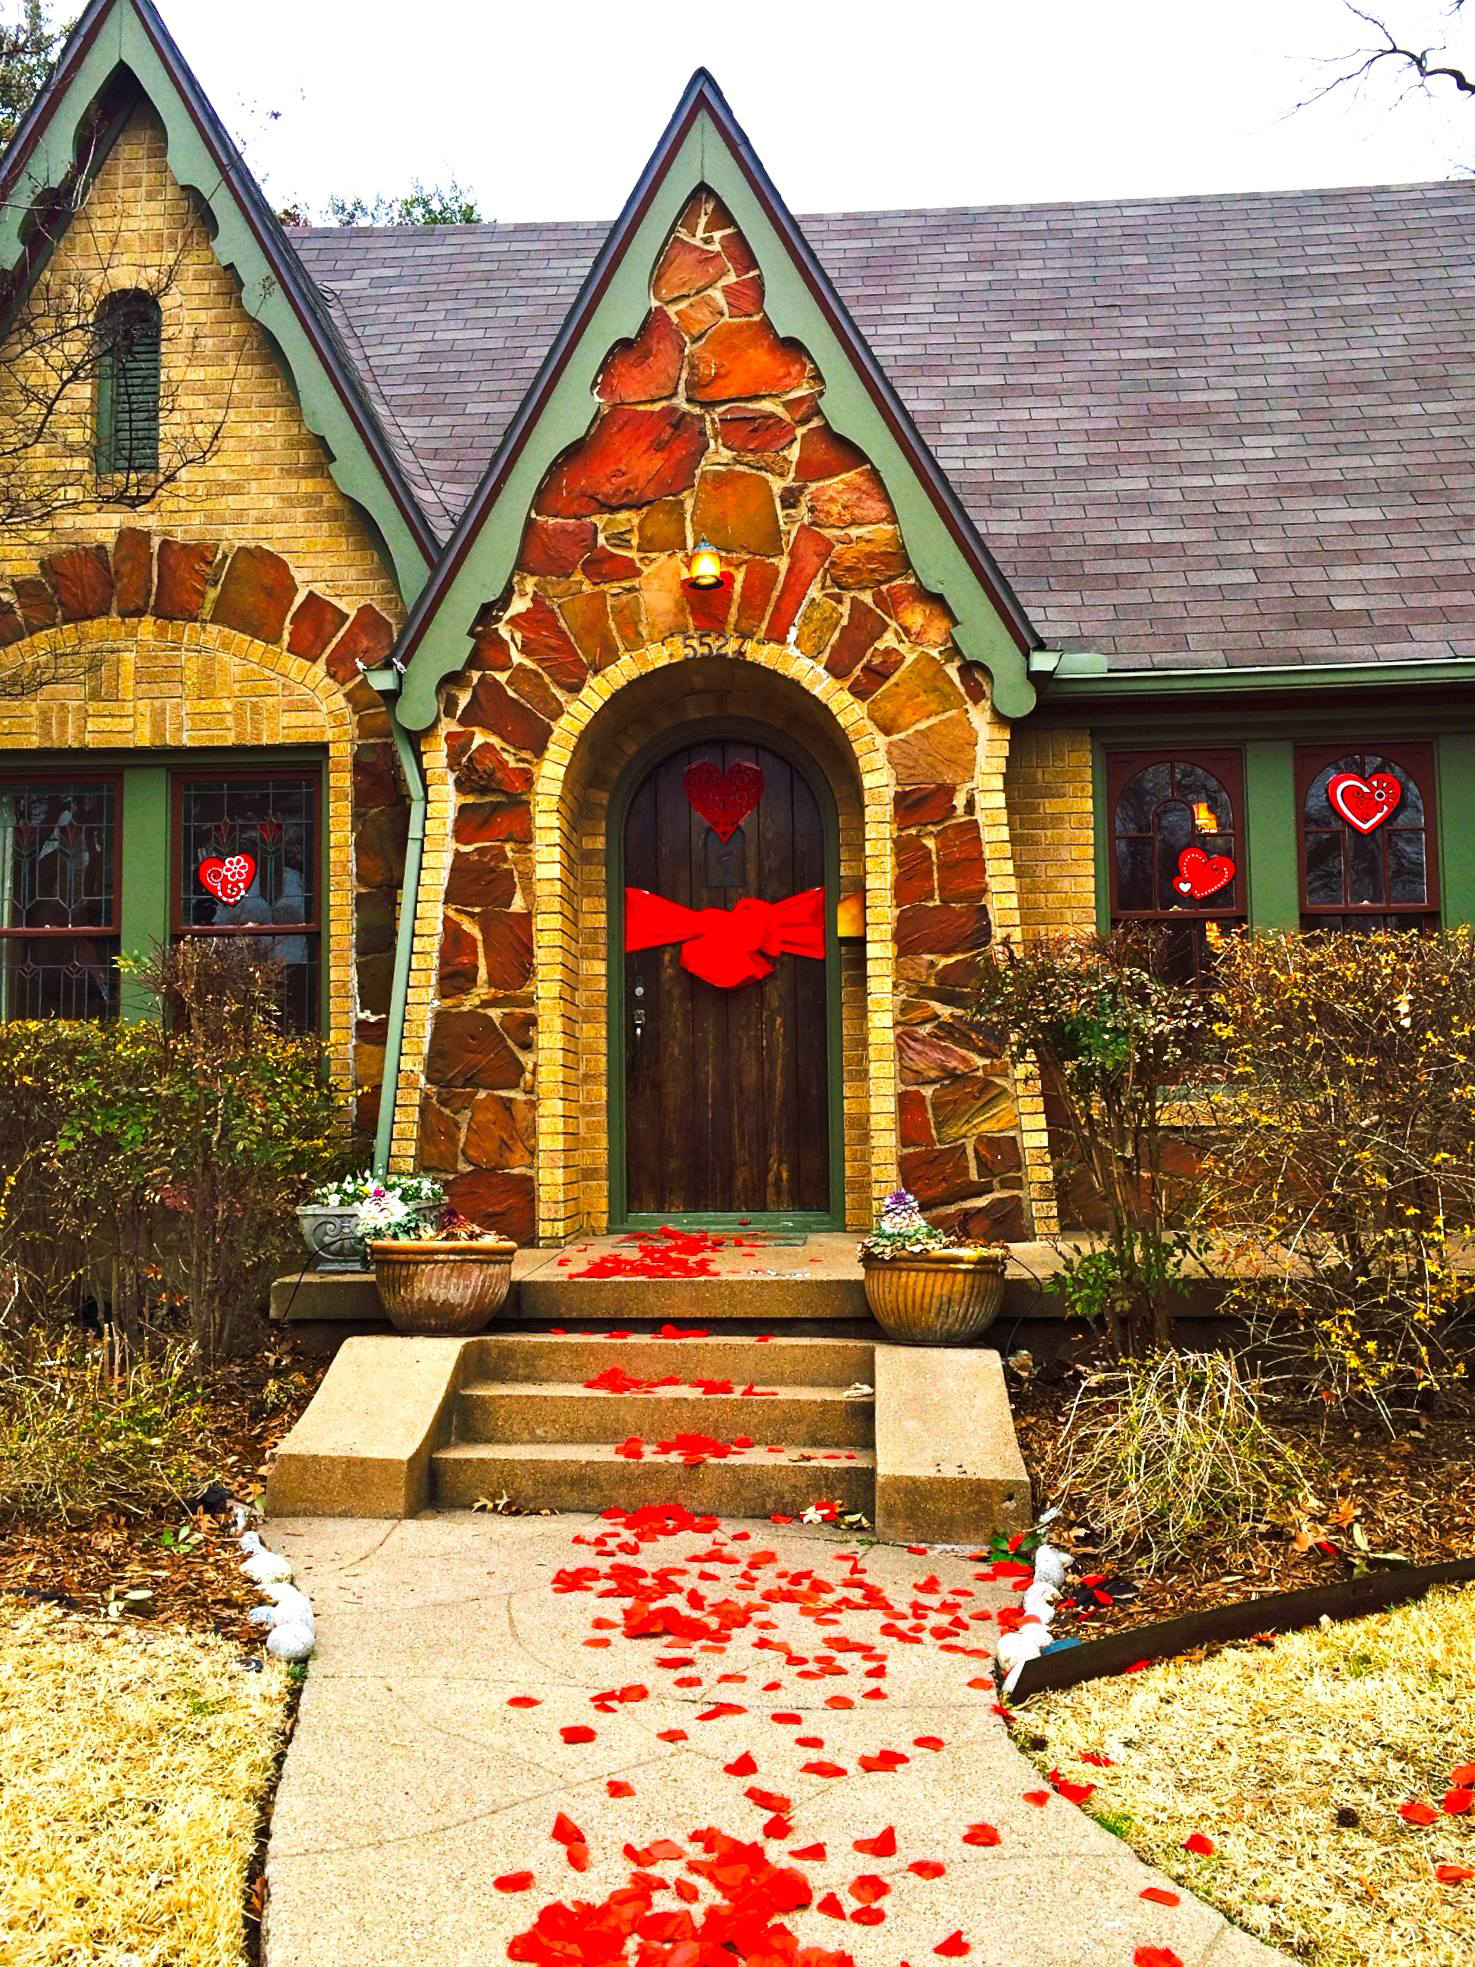 A Home for Valentine's Day